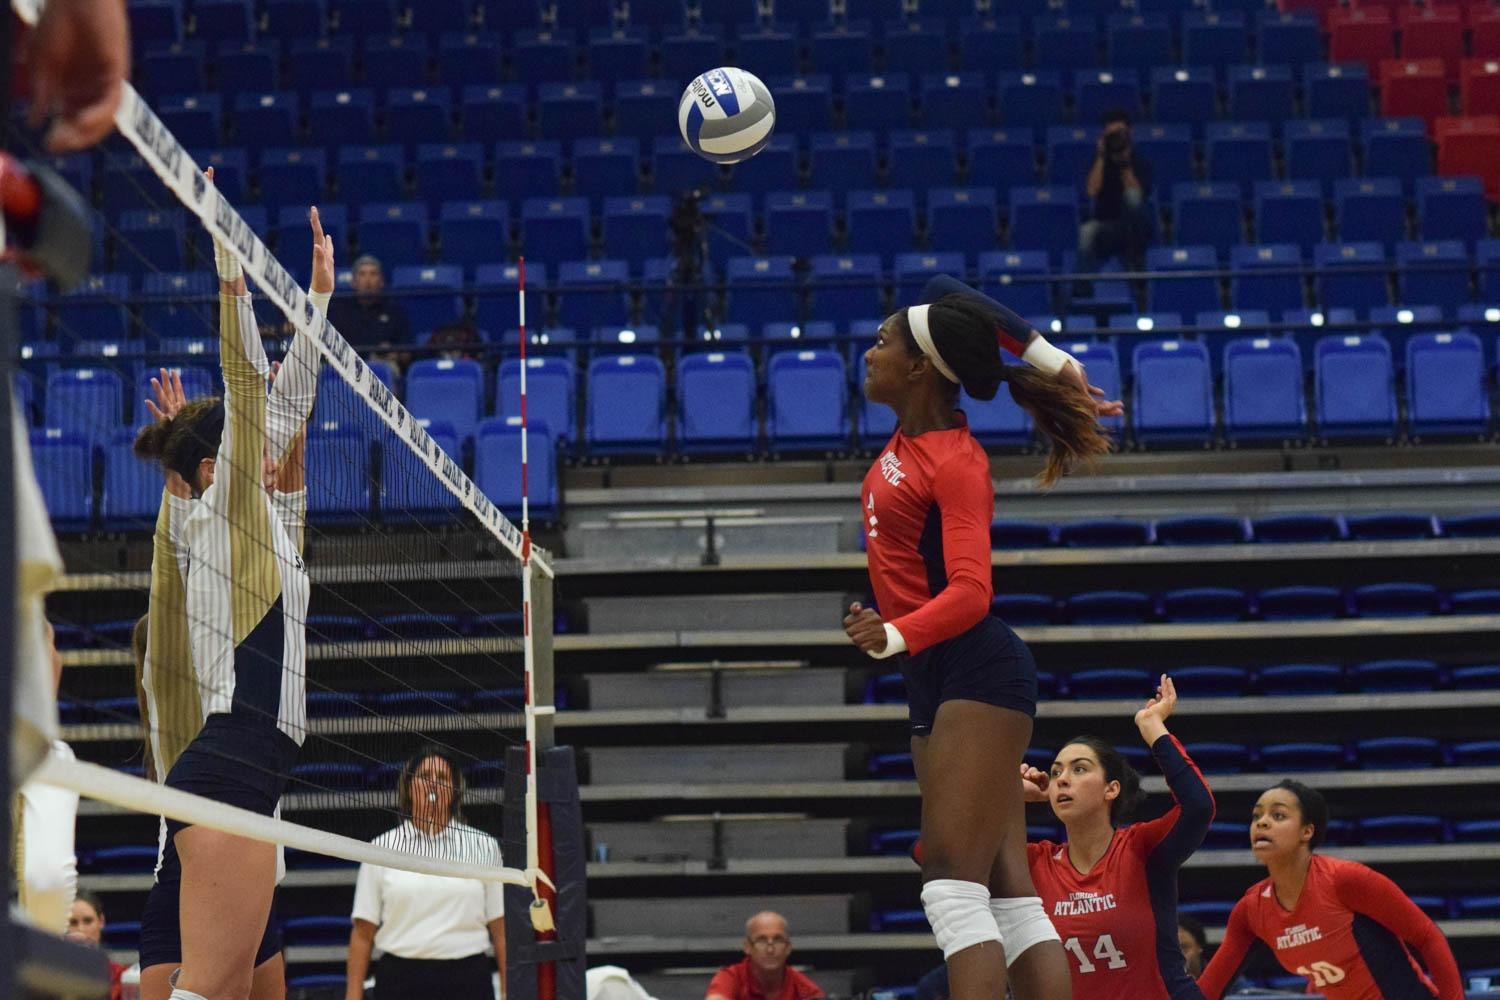 Senior middle blocker Brittany Brown spikes the ball past two Eagles defenders during the first set of their match during the FAU Invitational tournament. Ryan Lynch | Sports Editor